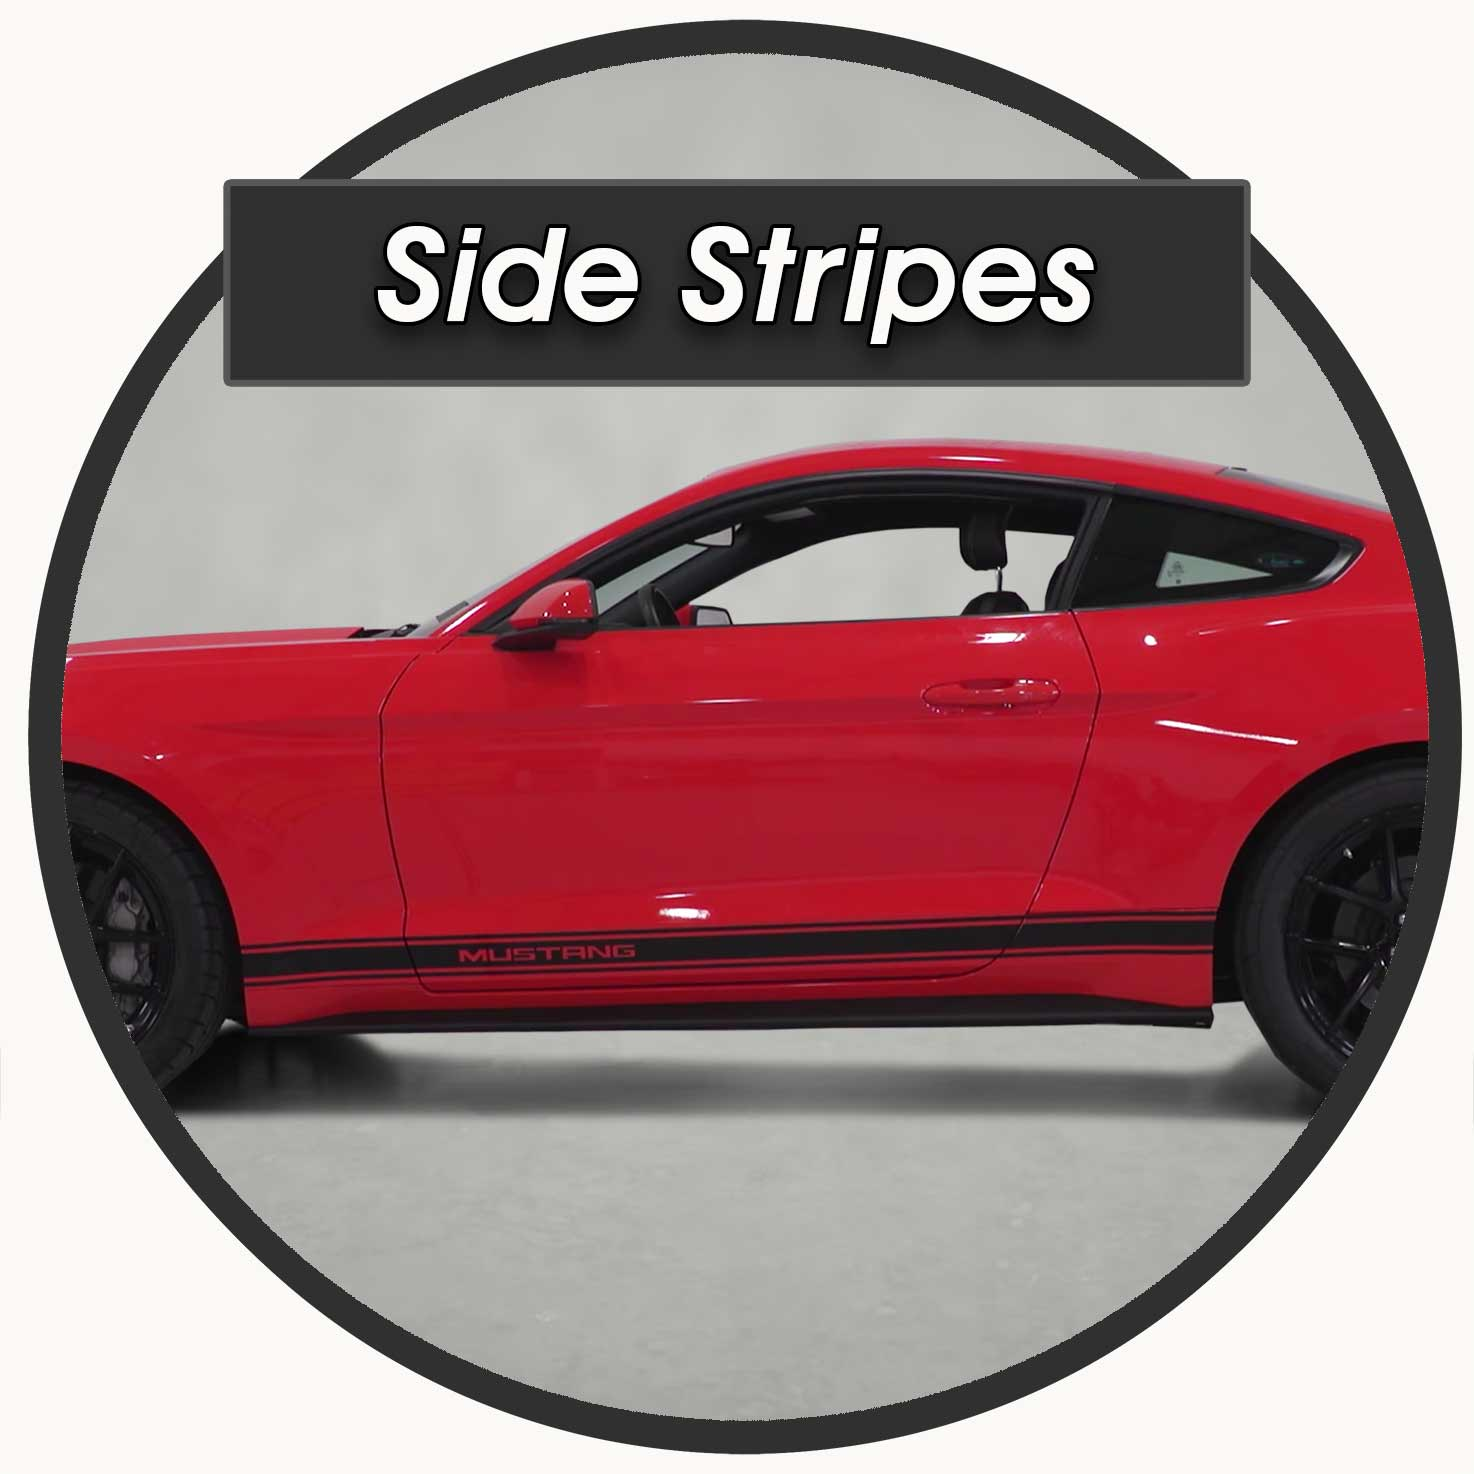 Side Stripes on a Red Ford Mustang for sale 2015-2021